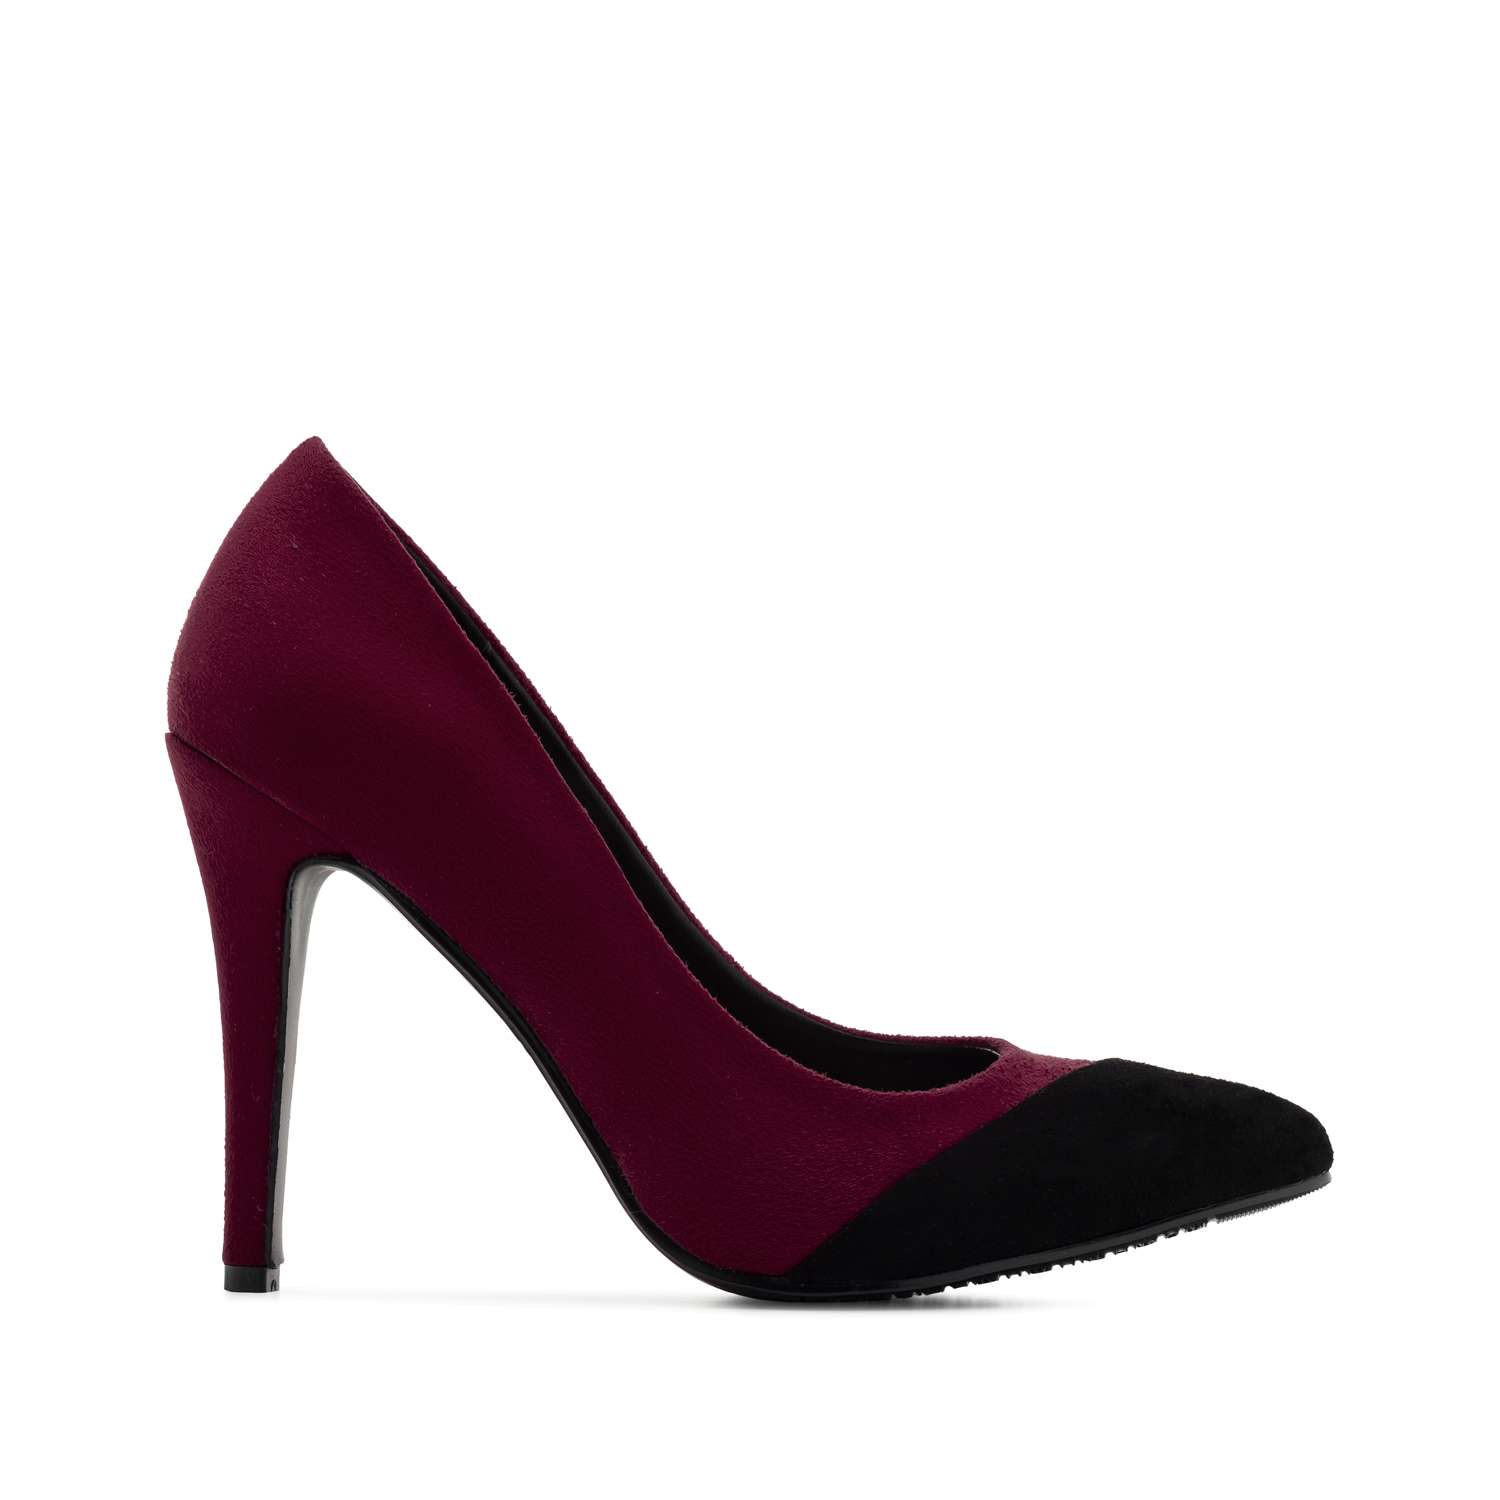 High-heels in Burgundy Suede